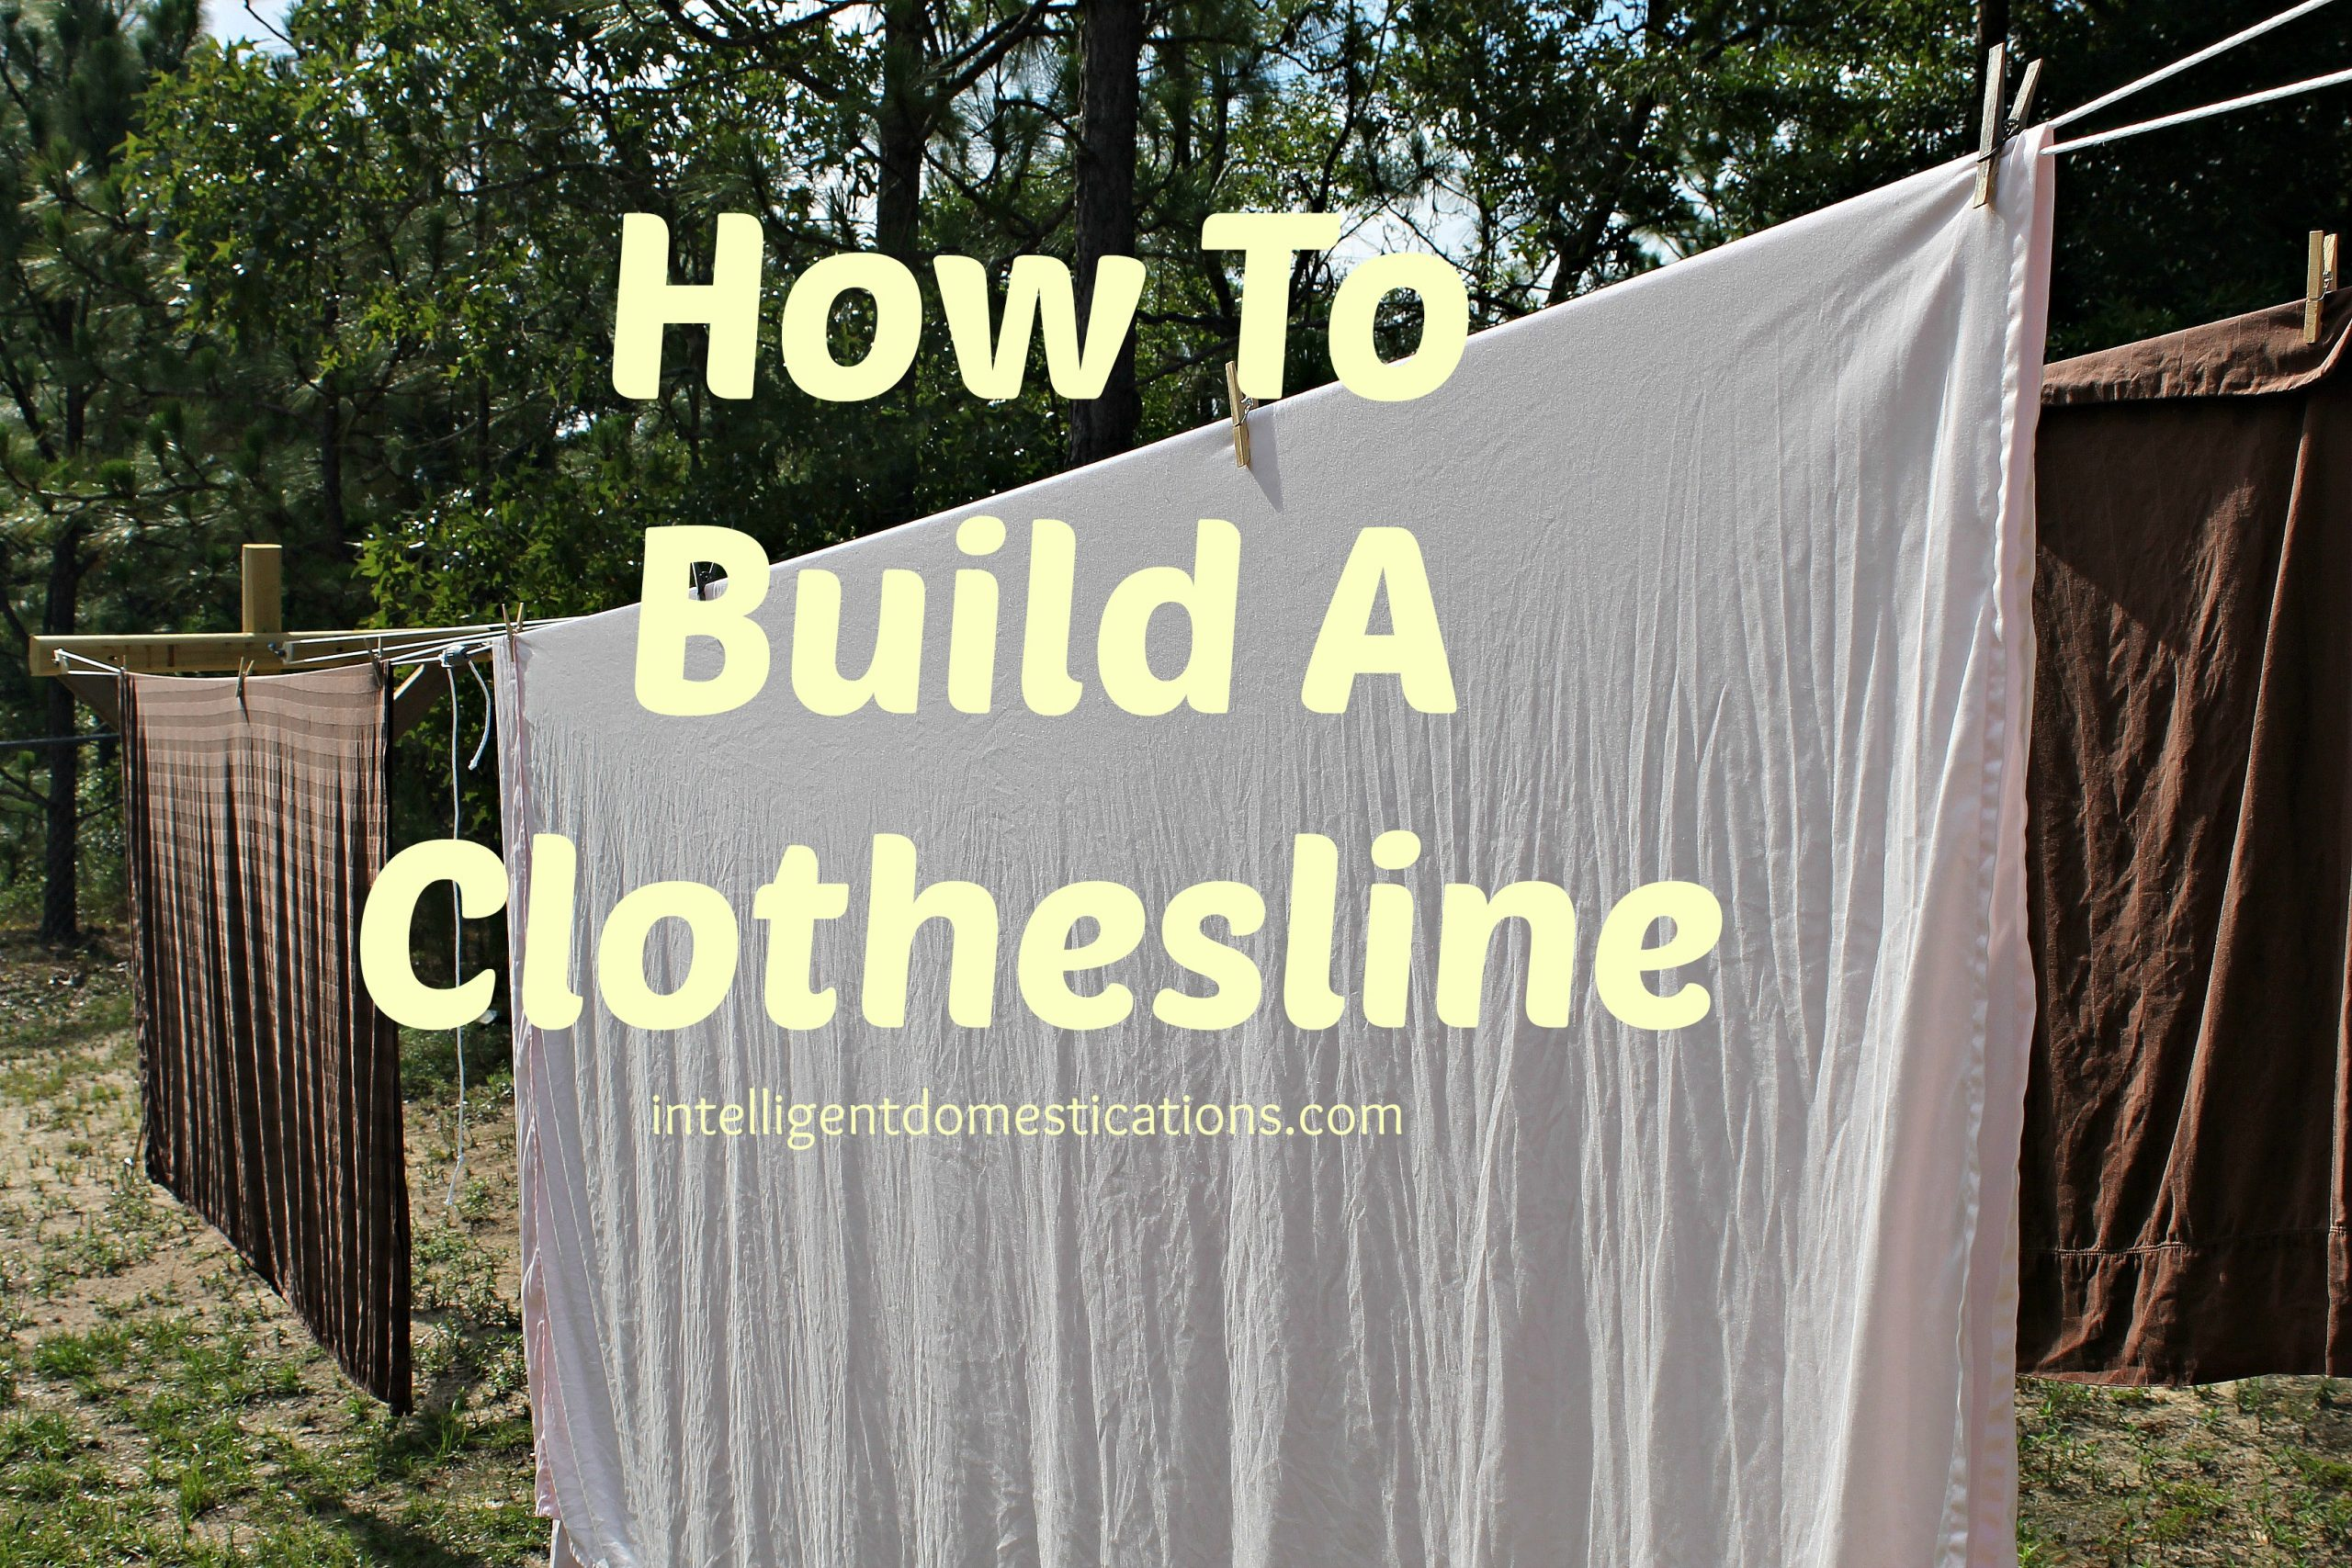 Domestications bed in a bag - How To Build A Clothesline